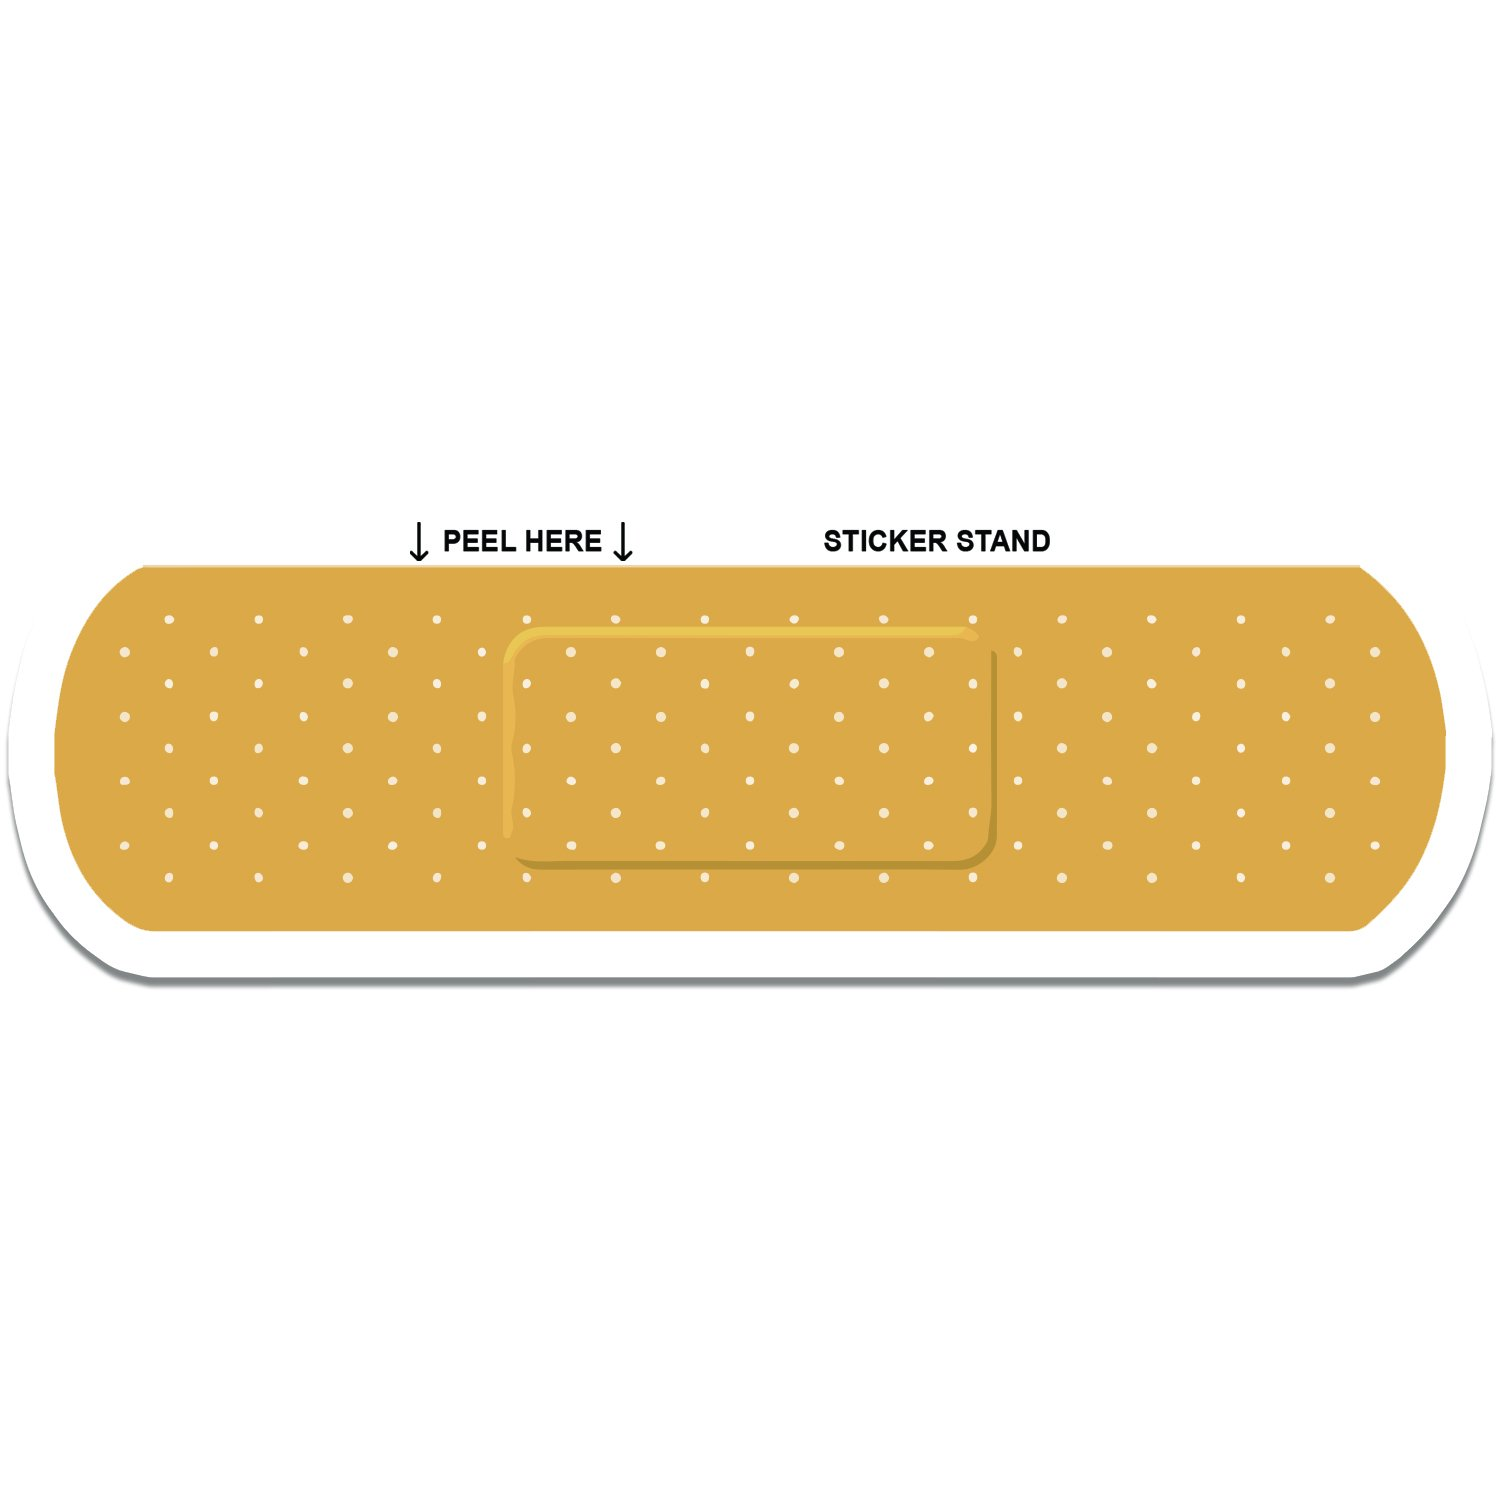 Band-aid Bandage Car Decal Sticker Sticker Stand